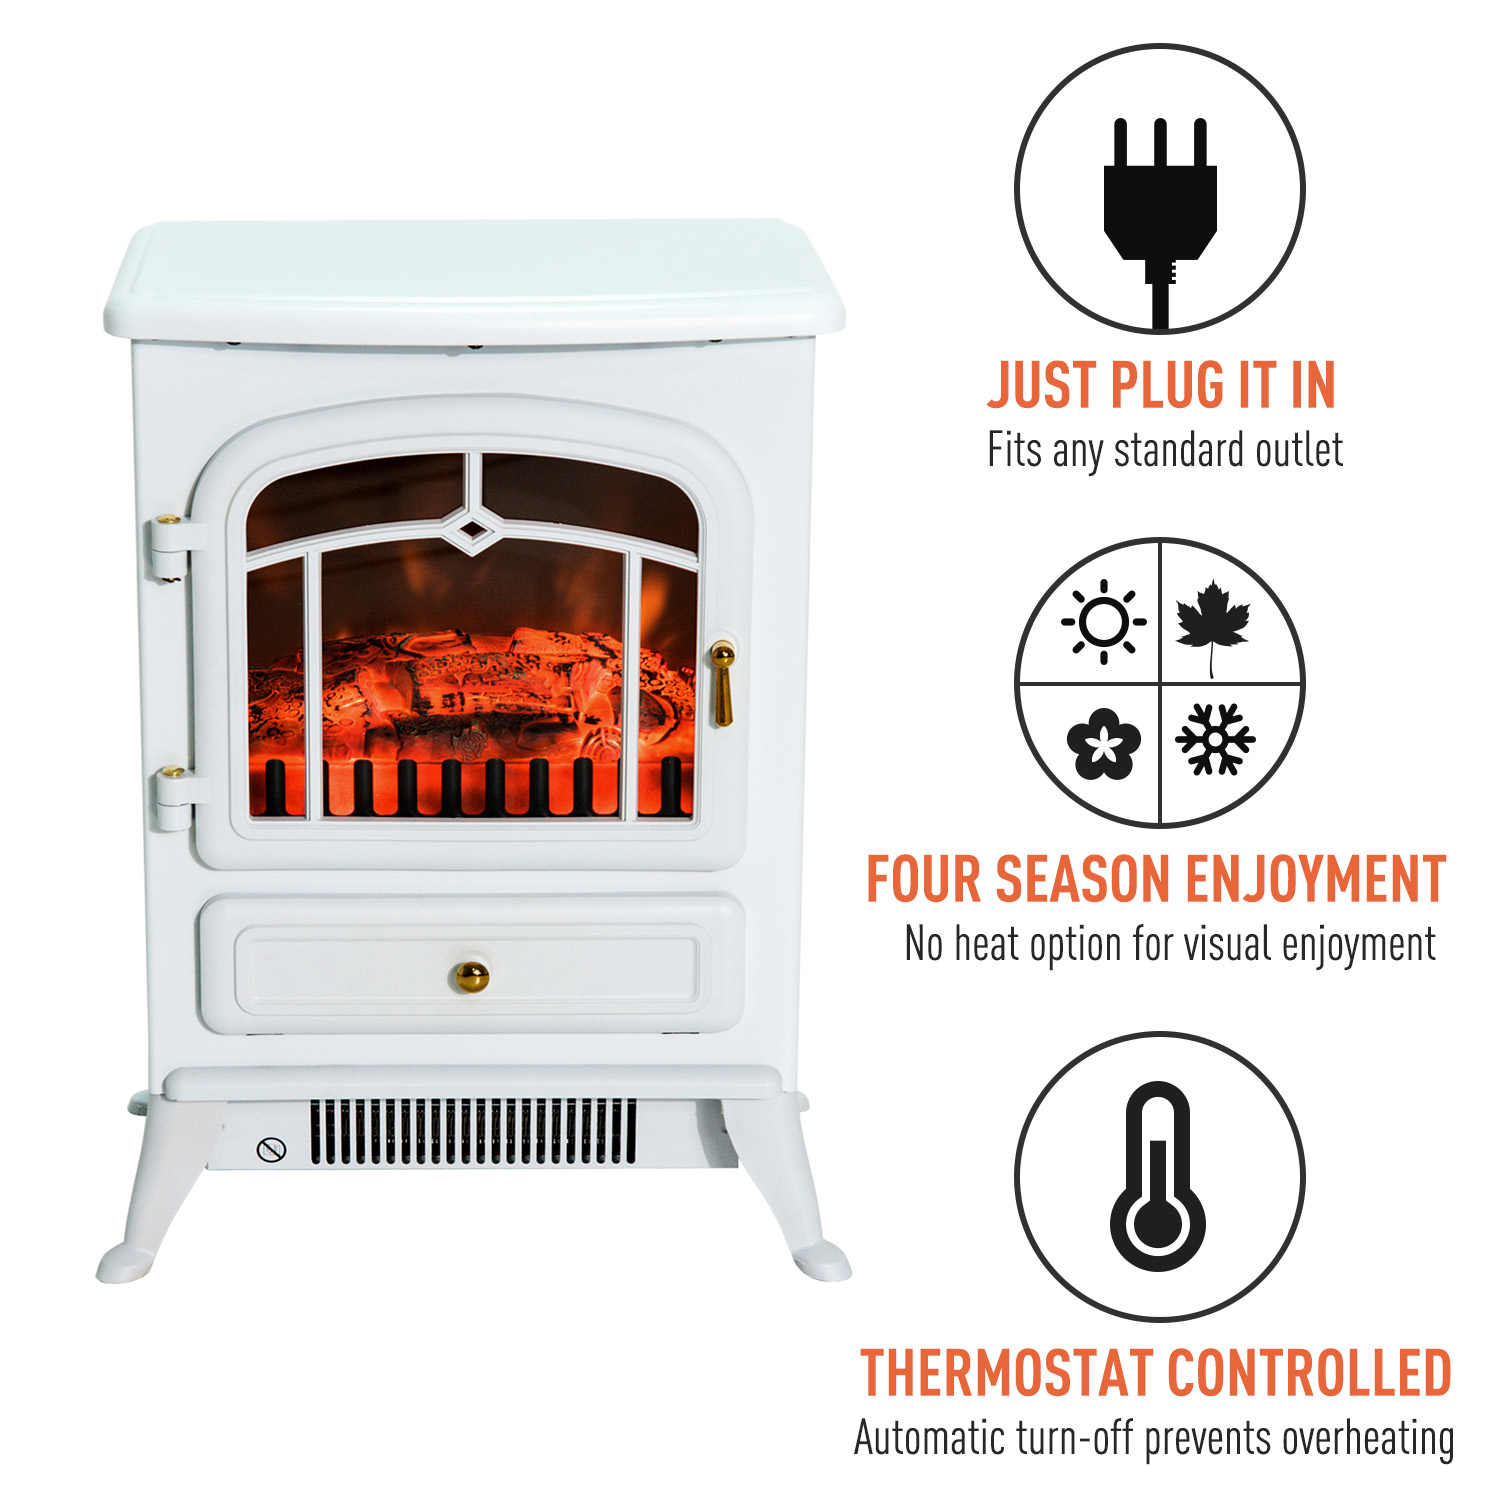 HOMCOM-750-1500W-Portable-Electric-Fireplace-Stove-Heater-Adjustable-LED-Flames thumbnail 19